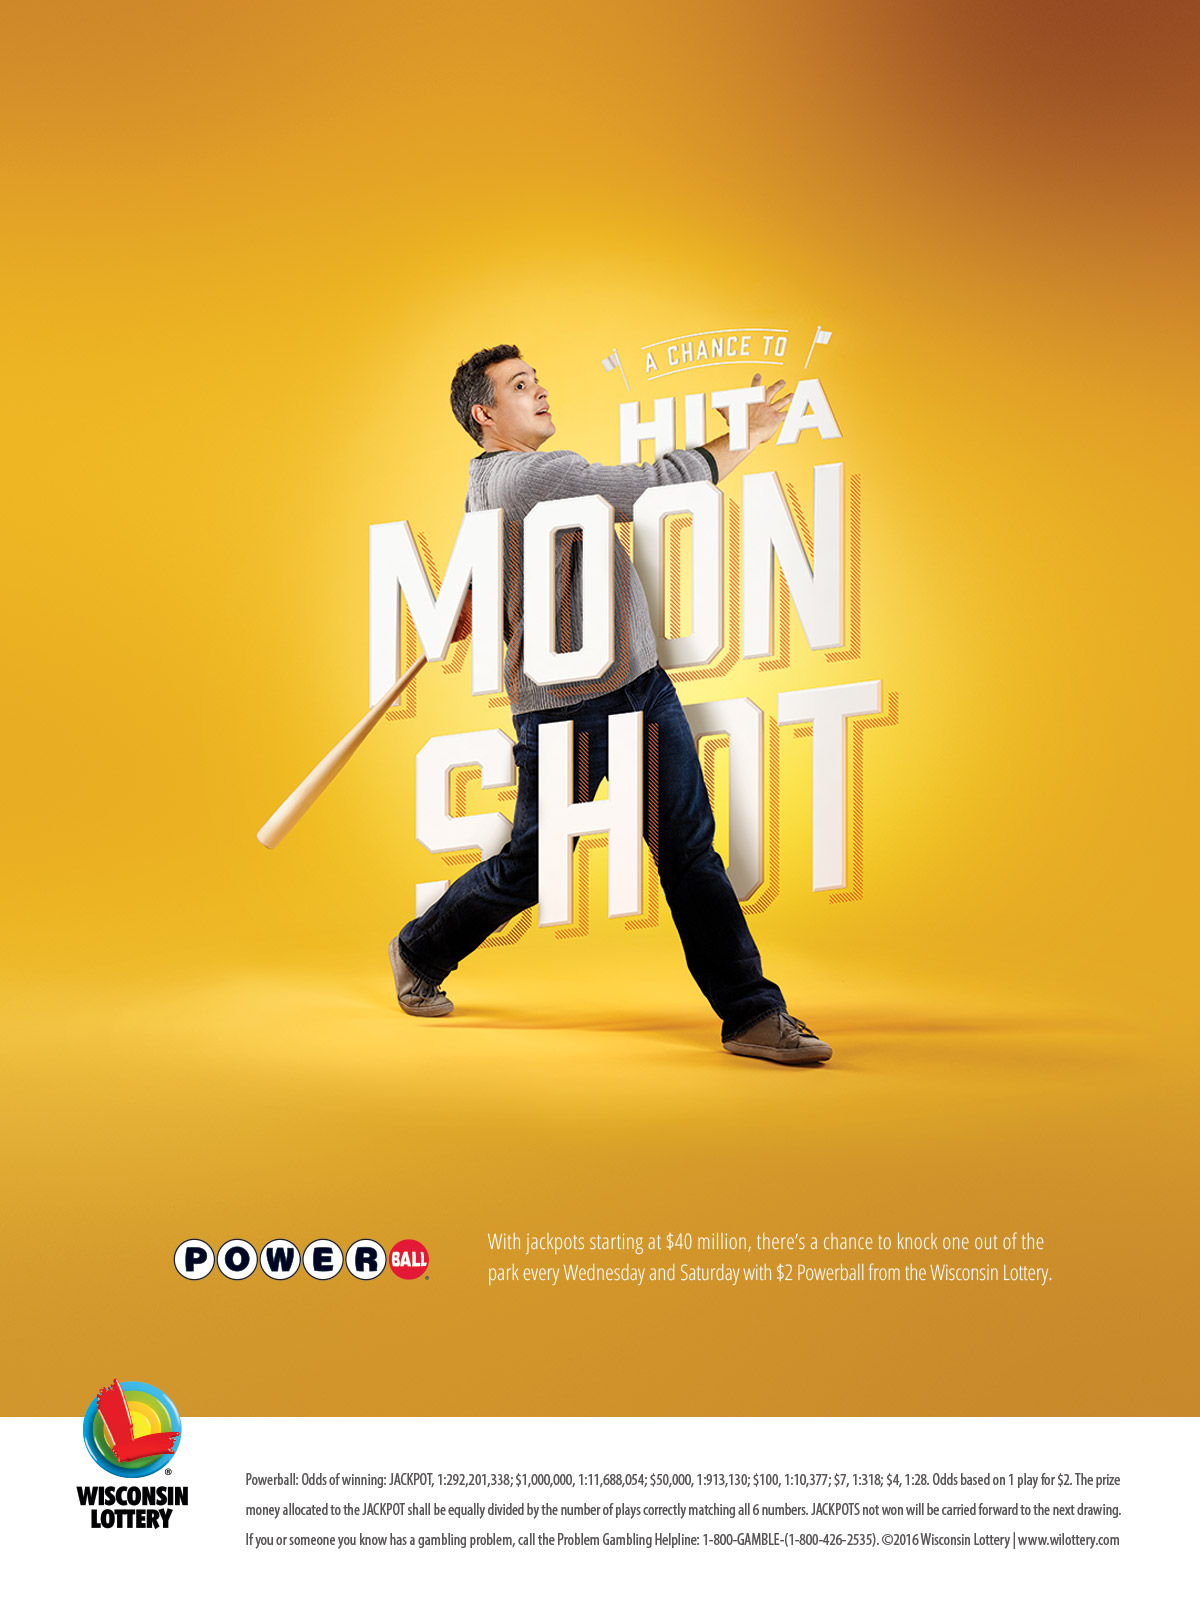 "A man swinging a baseball bat. He is surrounded by text that reads: ""A Chance to Hit a Moon Shot"""